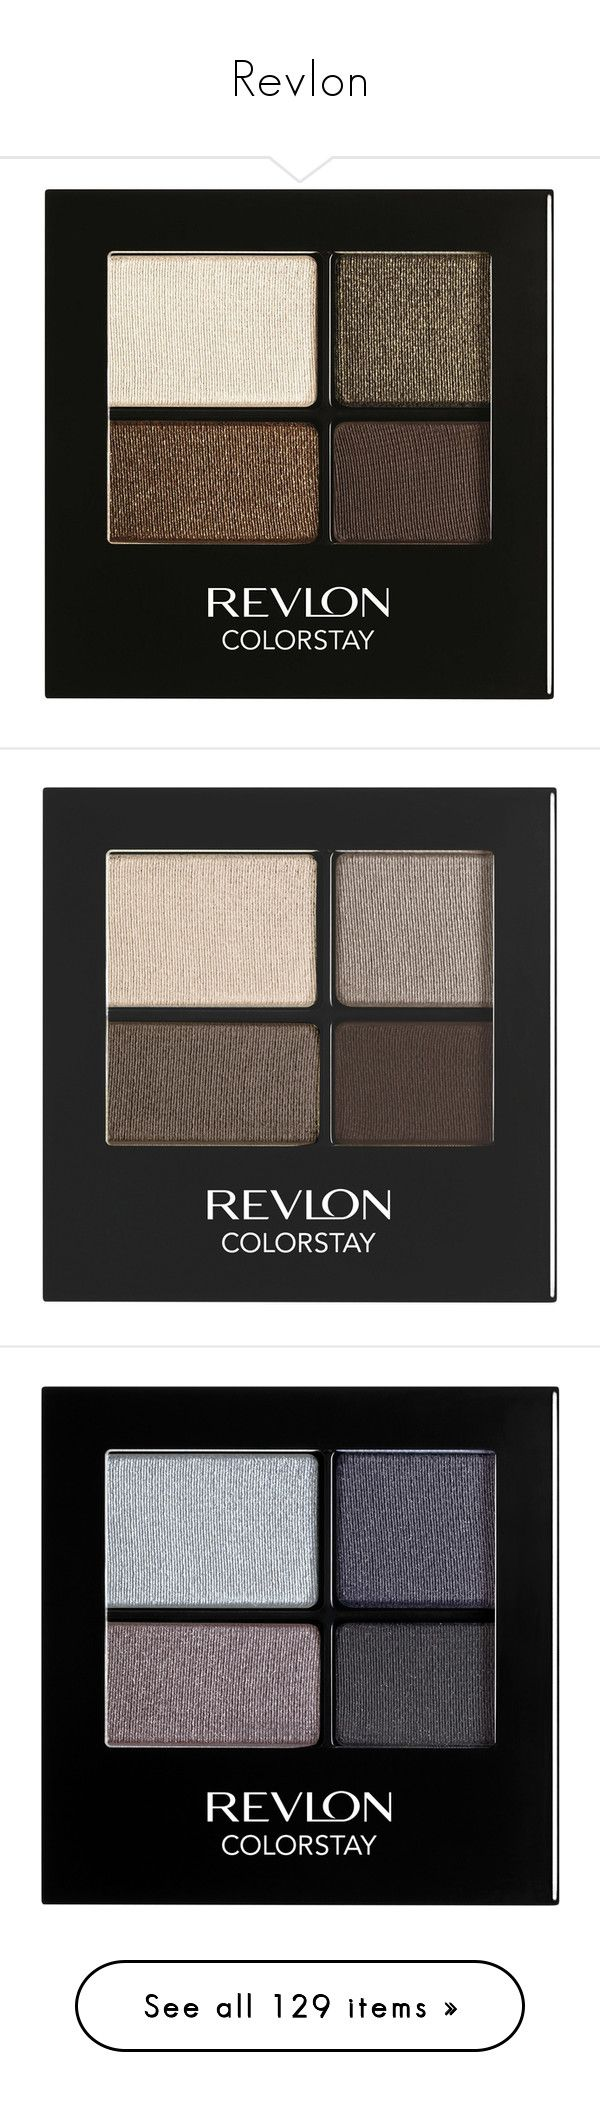 """Revlon"" by shoppings9 ❤ liked on Polyvore featuring beauty products, makeup, eye makeup, eyeshadow, revlon eyeshadow, revlon eye makeup, revlon, revlon eye shadow, eye brow makeup and siren"